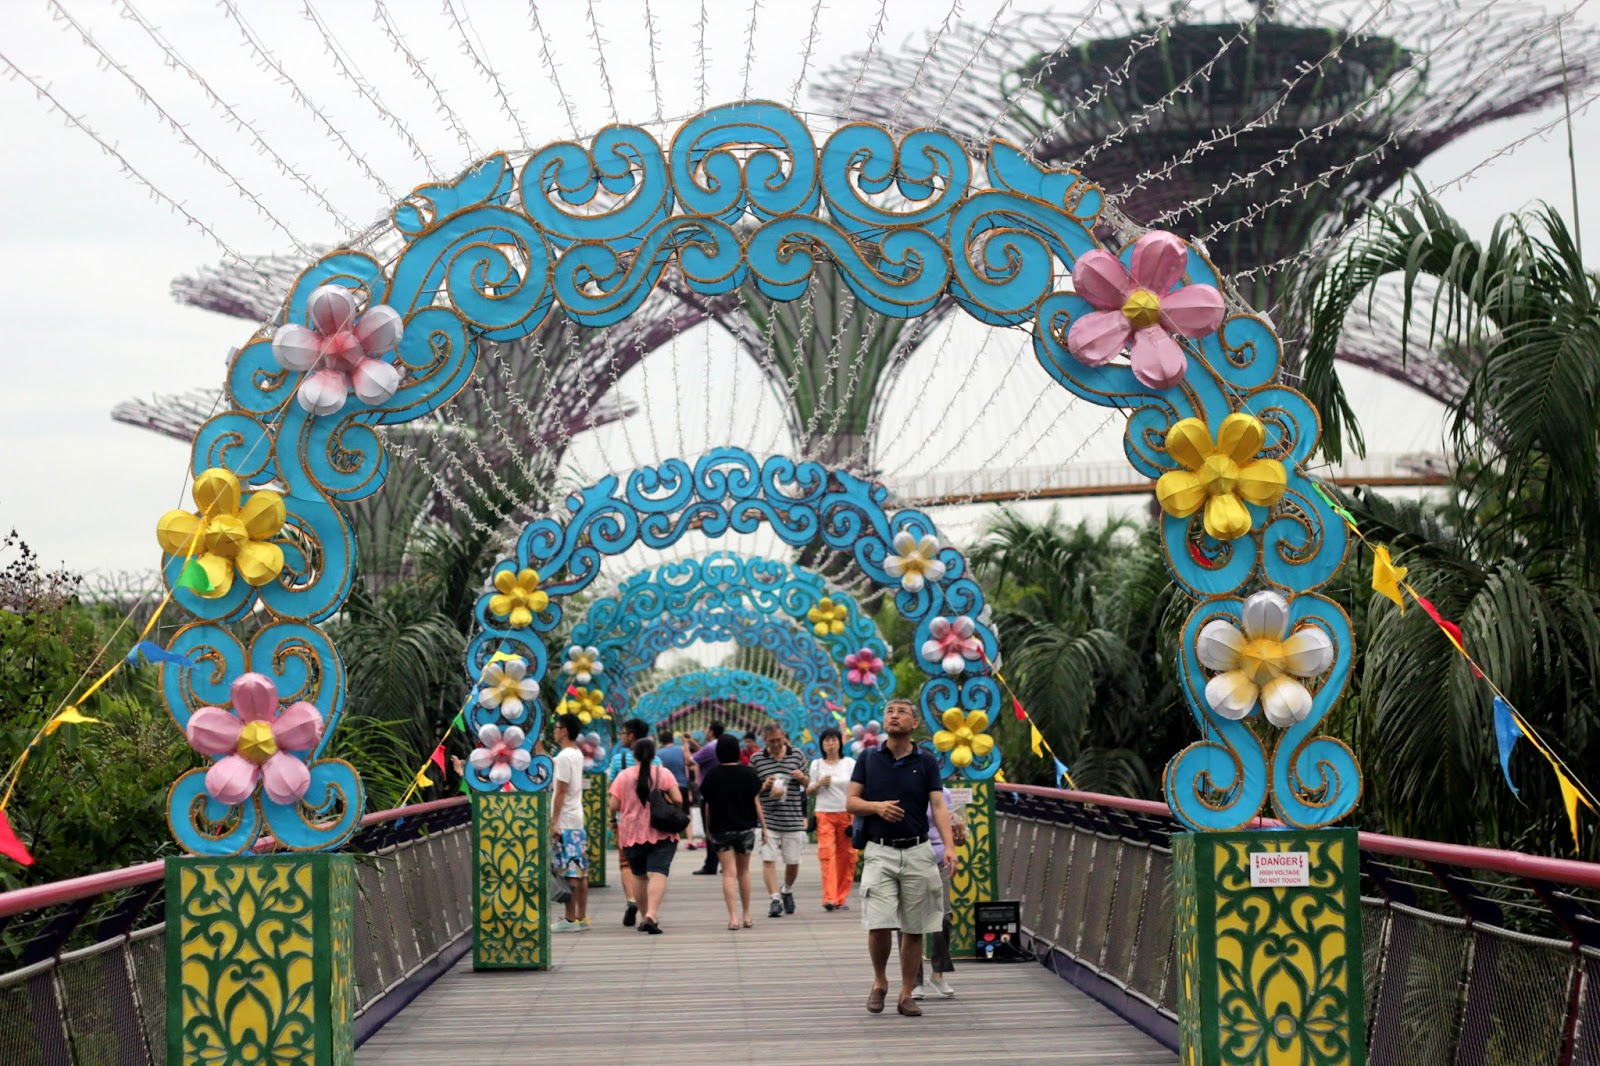 Visited mid autumn festival the gardens 2013 onlywilliam - Garden by the bay festival ...